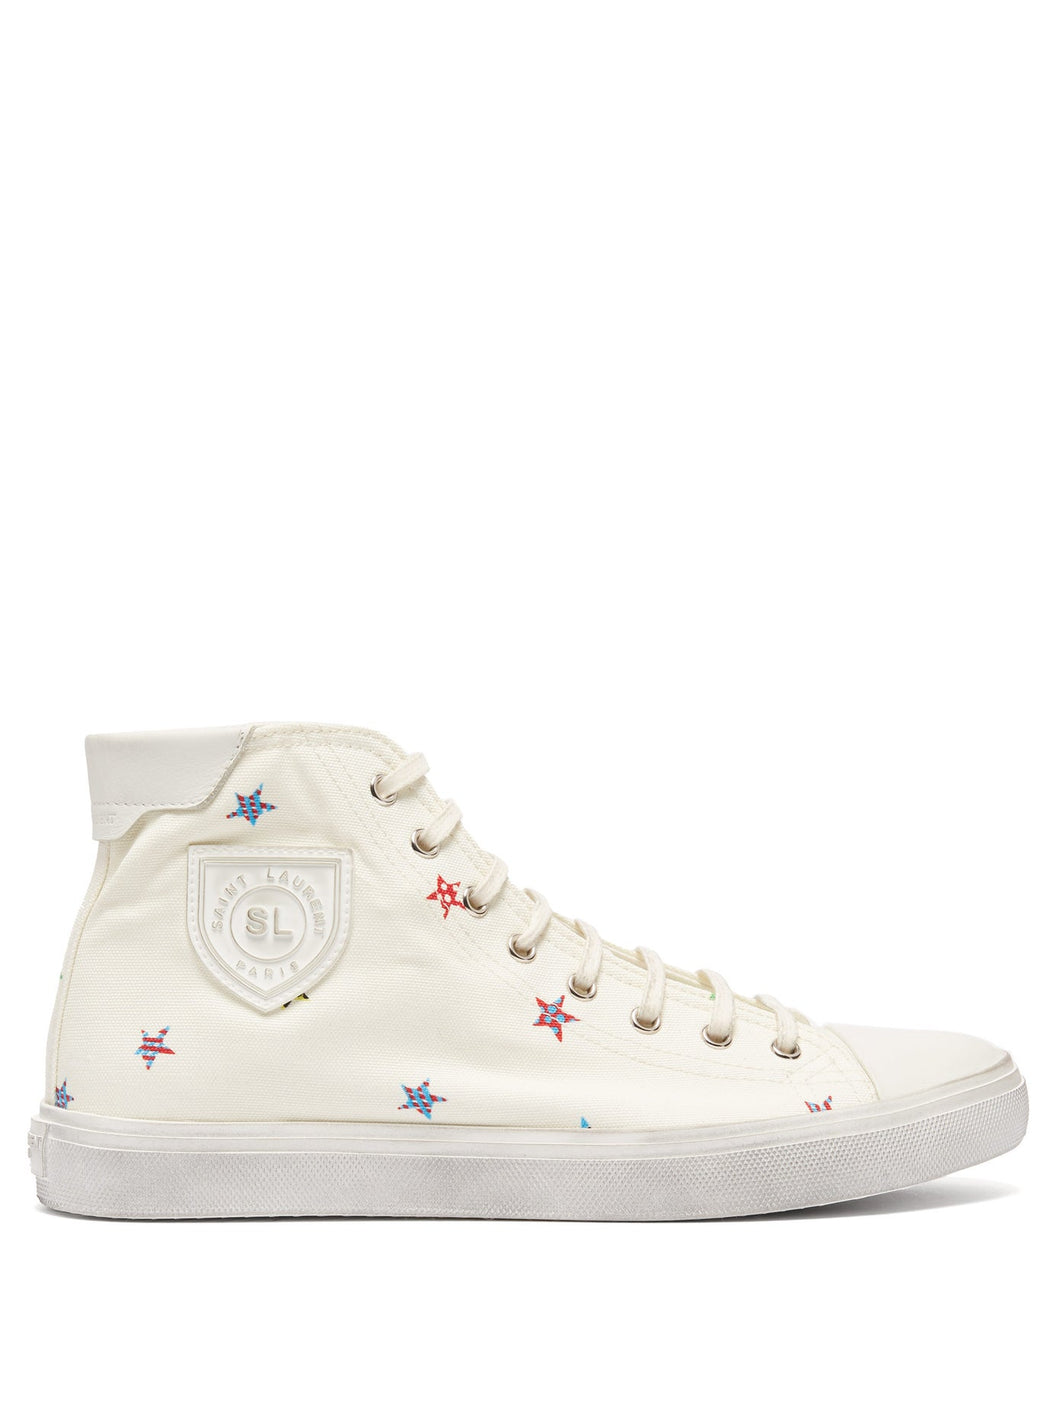 Bedford star-print canvas trainers